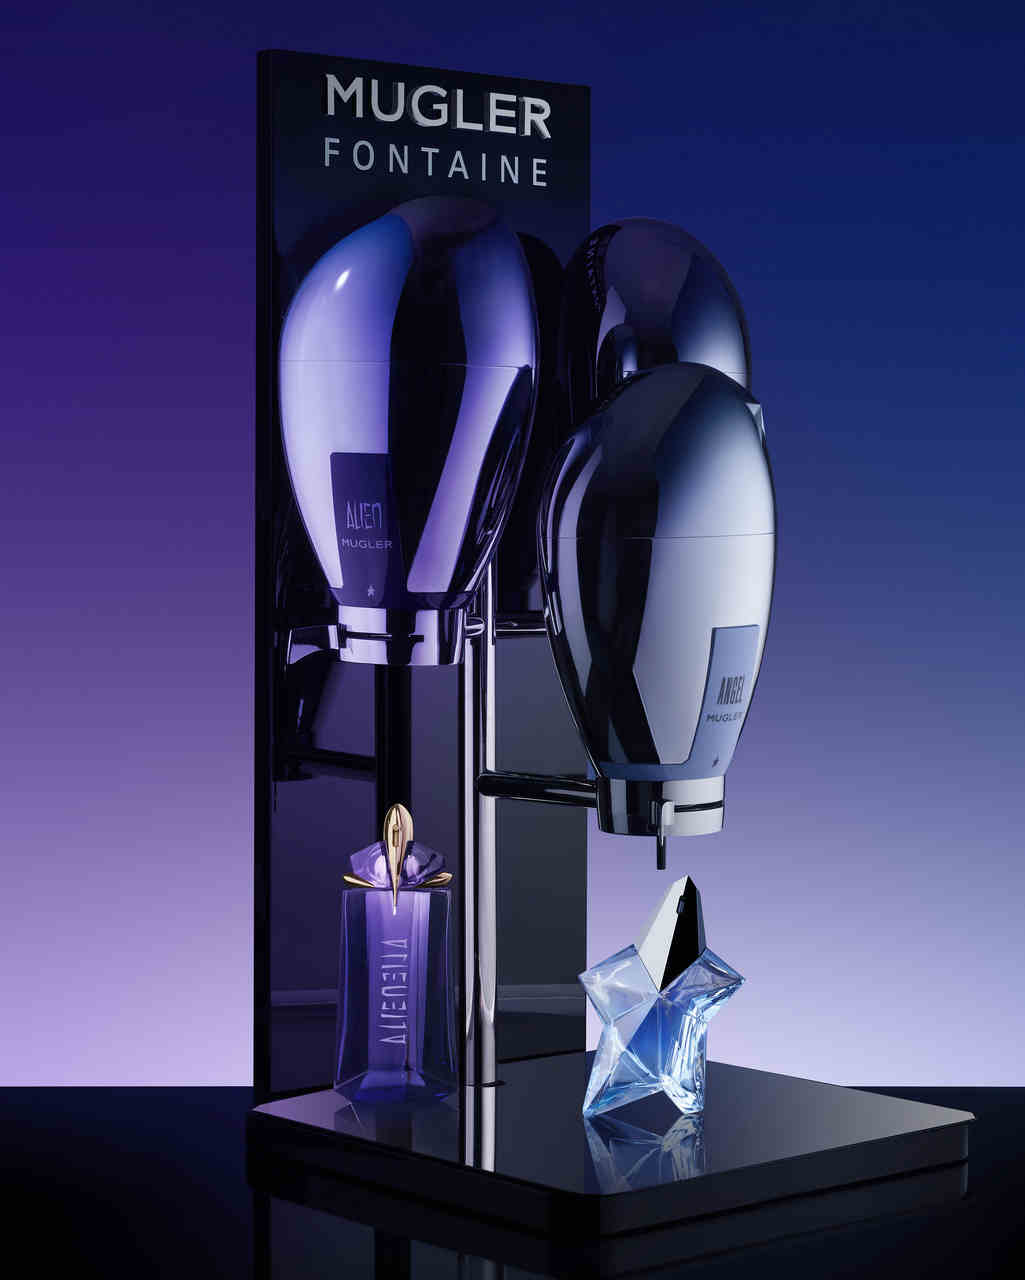 Mugler Fountain